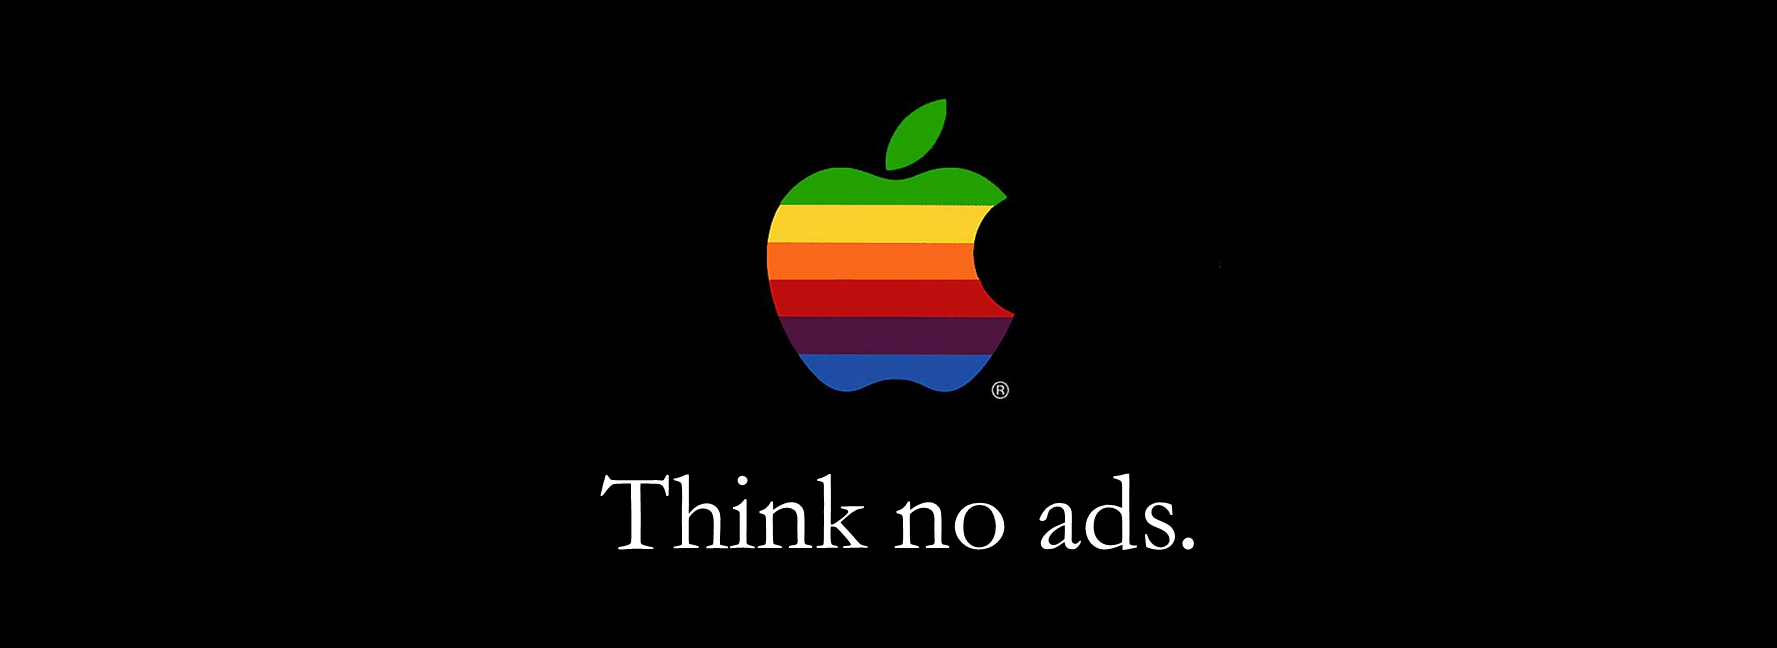 apple_ad_block